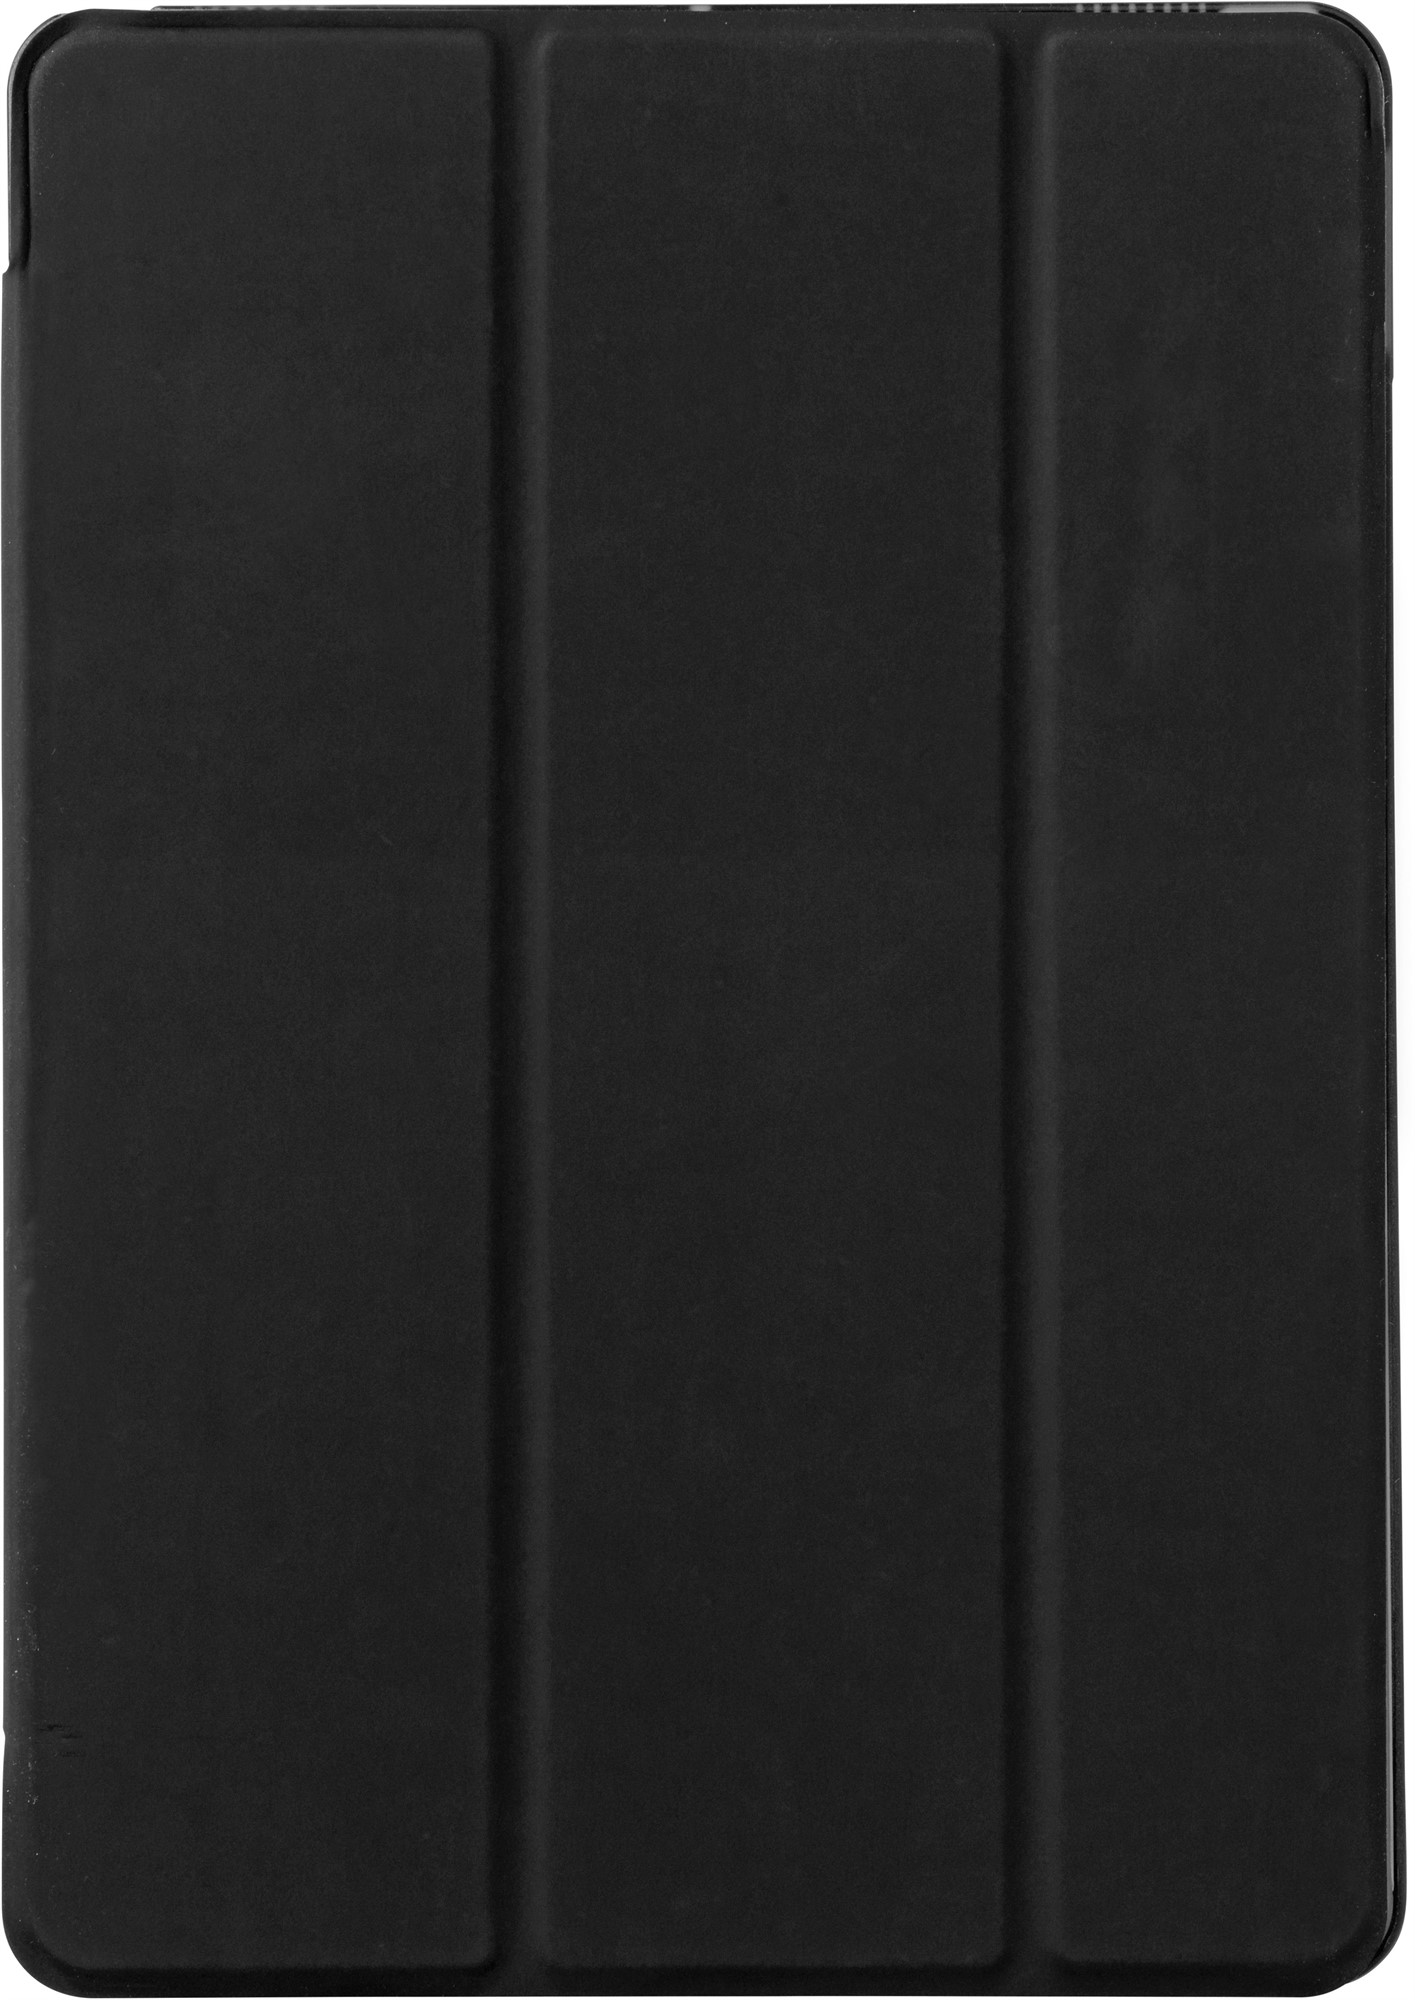 ESTUFF ES681105 IPAD2/3/4 COVER BLACK 10.5